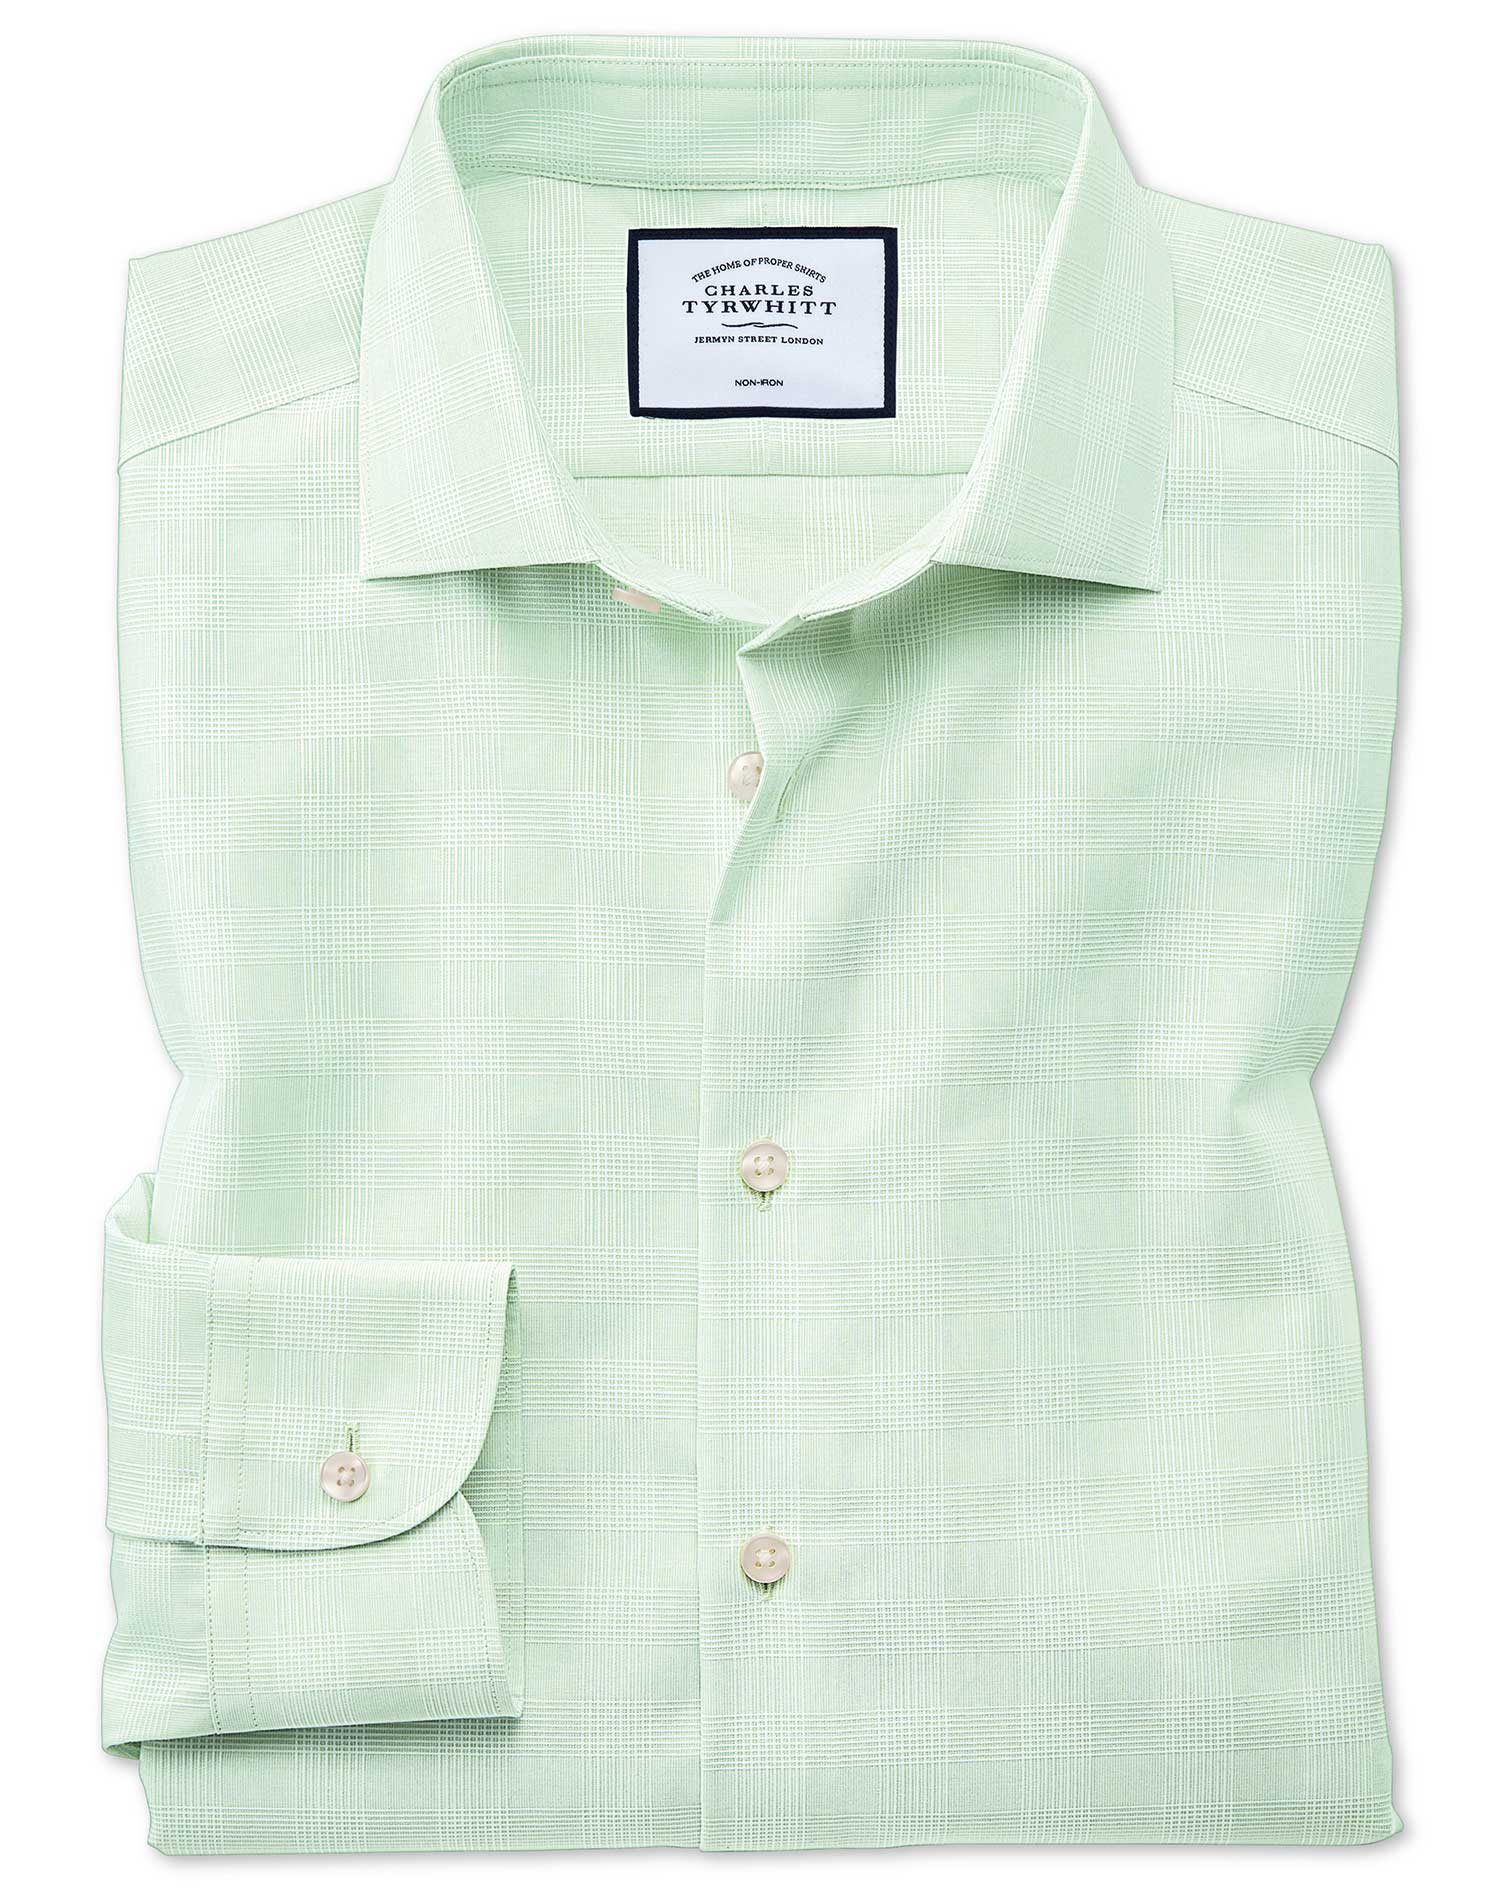 Slim Fit Business Casual Non-Iron Green Check Cotton Formal Shirt Single Cuff Size 17.5/36 by Charle